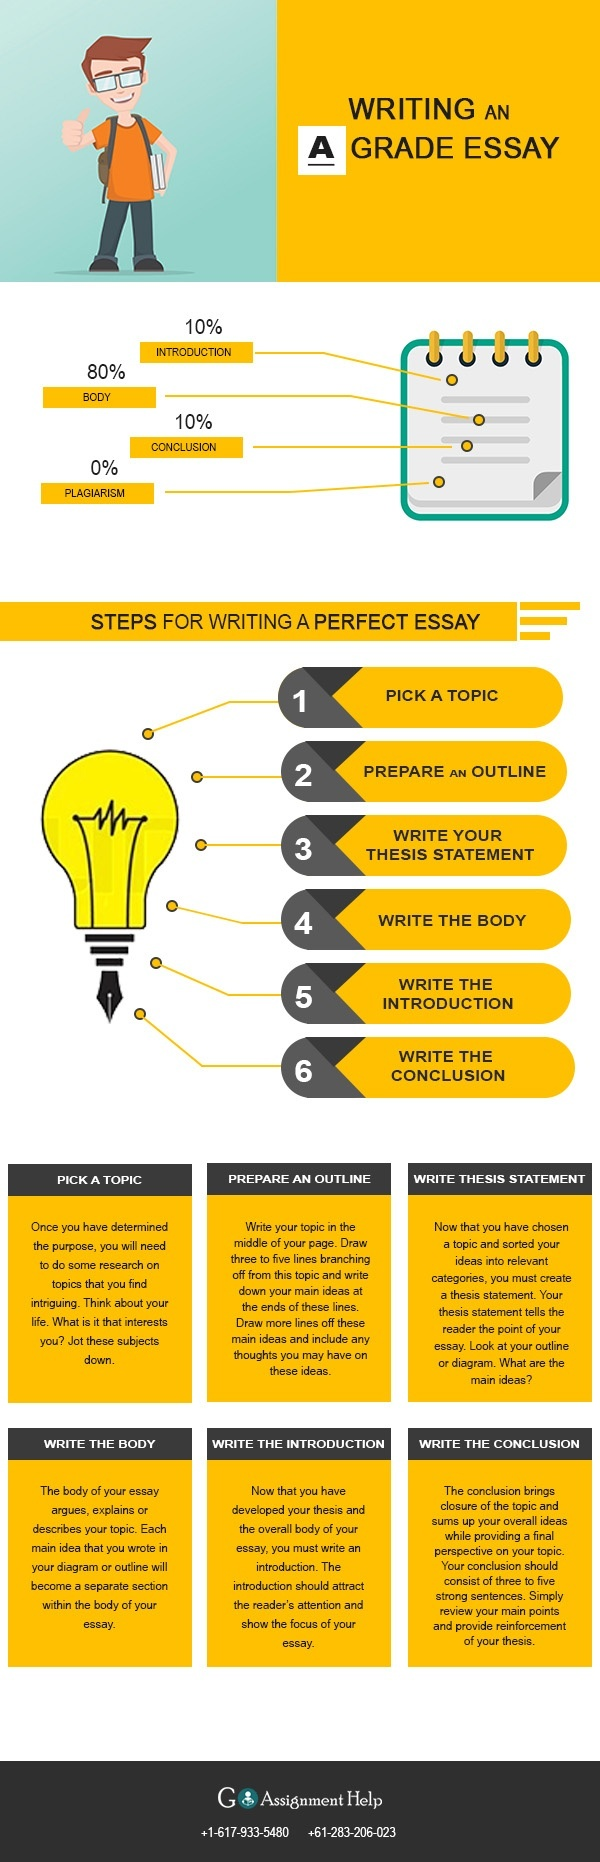 Styles Of Essay Here Is An Infographic Explaining  Steps For Writing An Essay To Score A  Grade The Lady With The Dog Essay also Writing Scholarship Essays Essay Writing Tips How Do I Write A Topic Sentence In Essay Writing  Importance Of Writing Essay